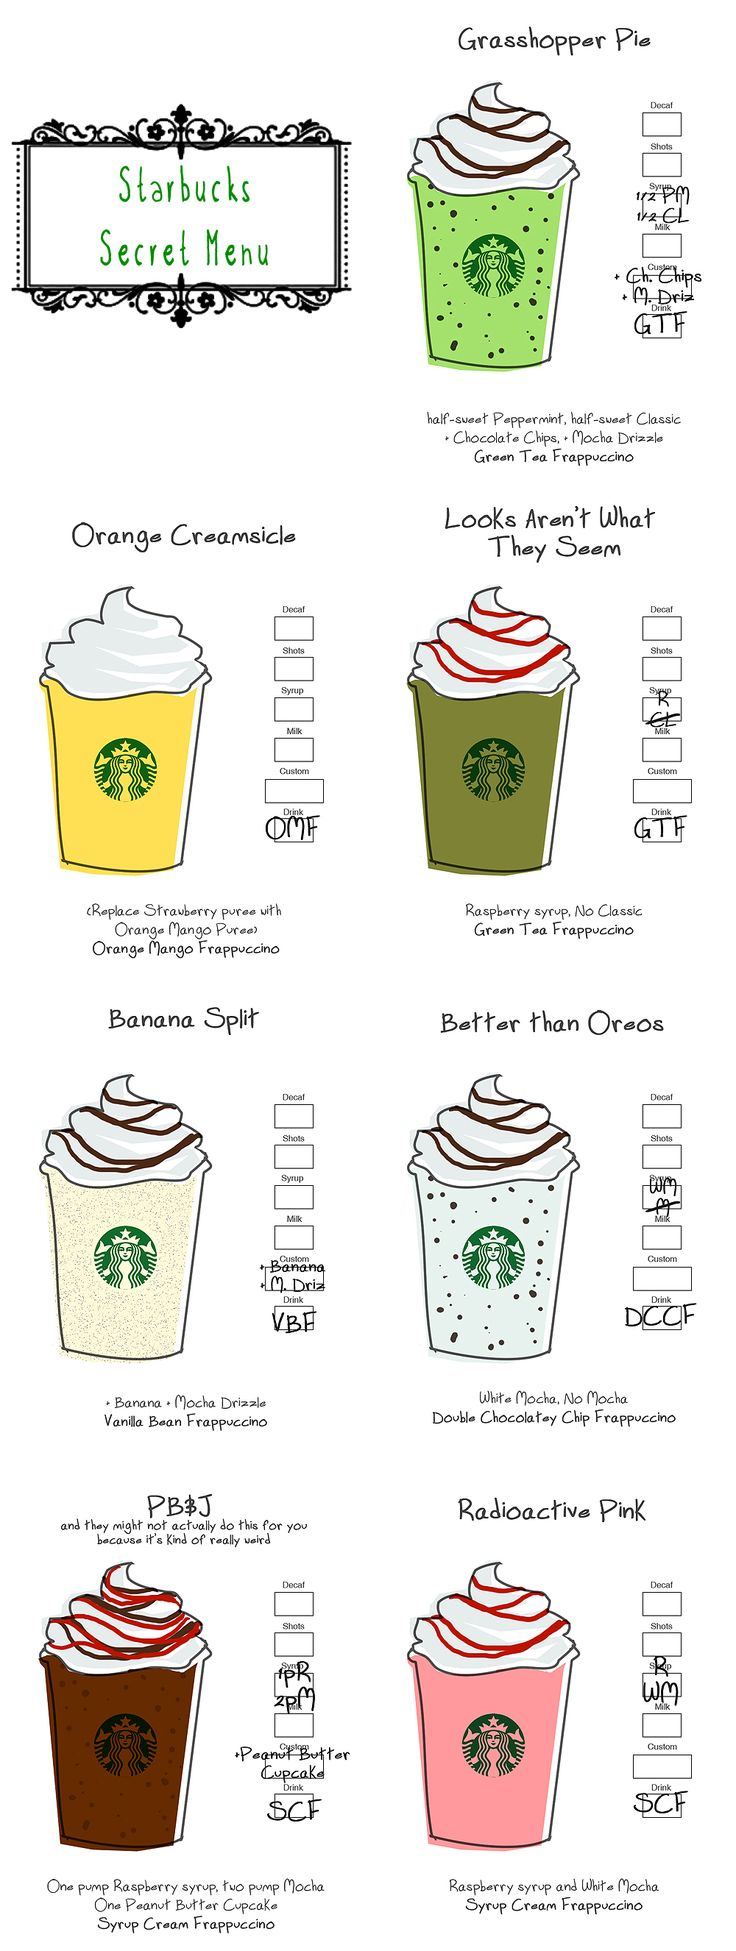 Starbucks Secret Menu - I could NEVER figure out what I should order whenever I went to Starbucks. Now.... I can try a new one every time I go! Yay!!